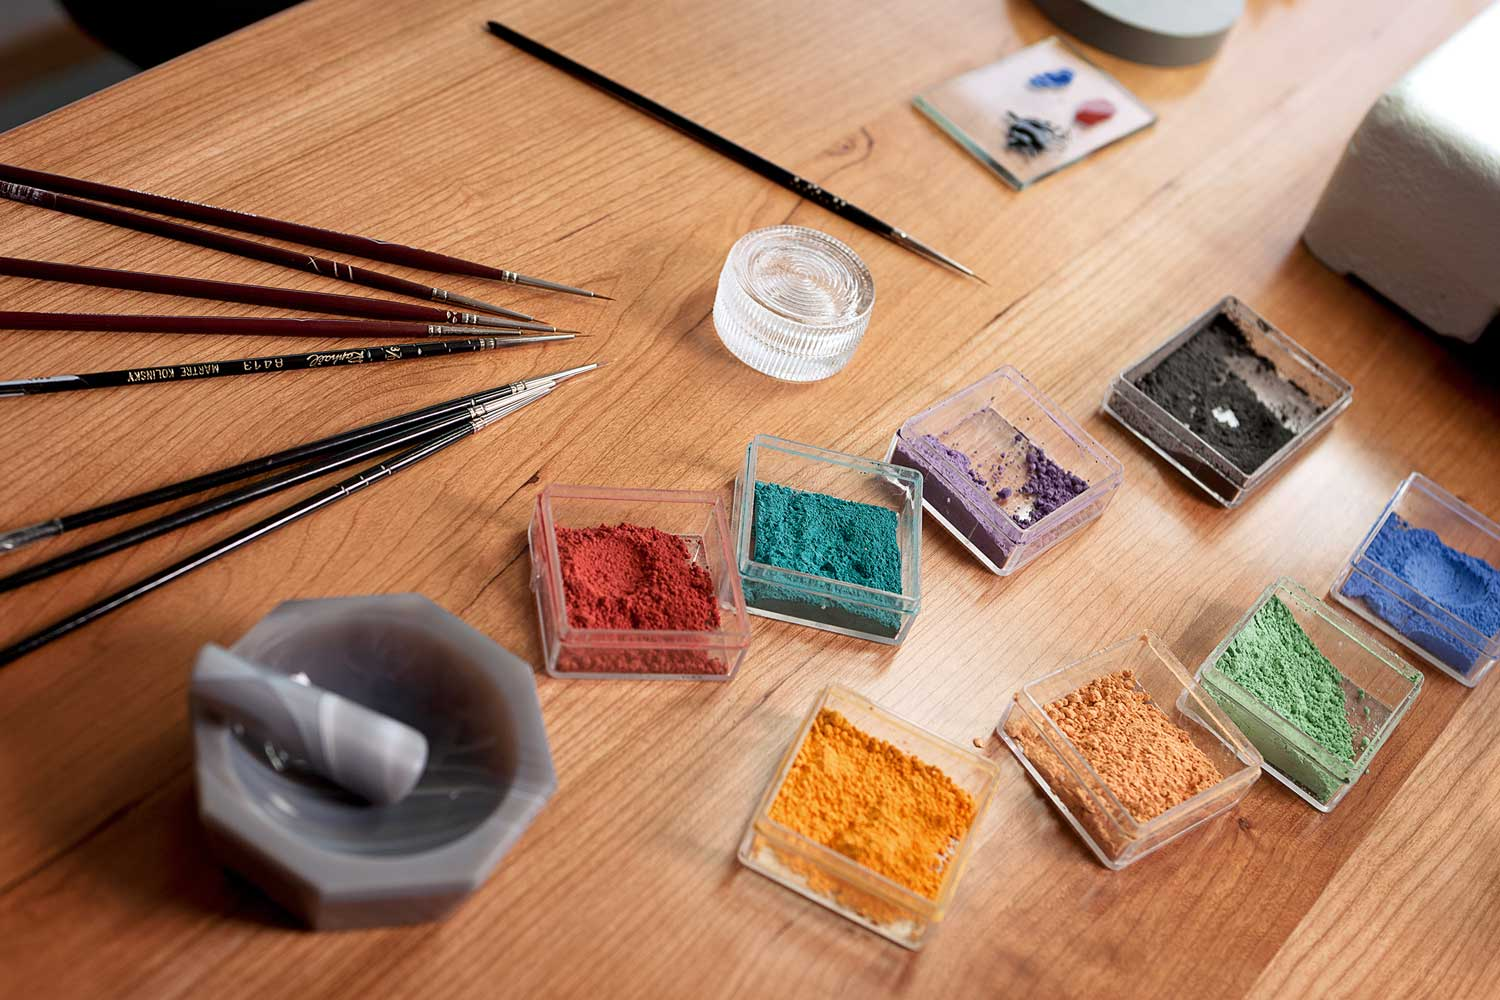 Blancpain's enamellers create their colours by mixing fine enamel powder with metallic oxides and pine oil, before painting with microscopically fine brushes.